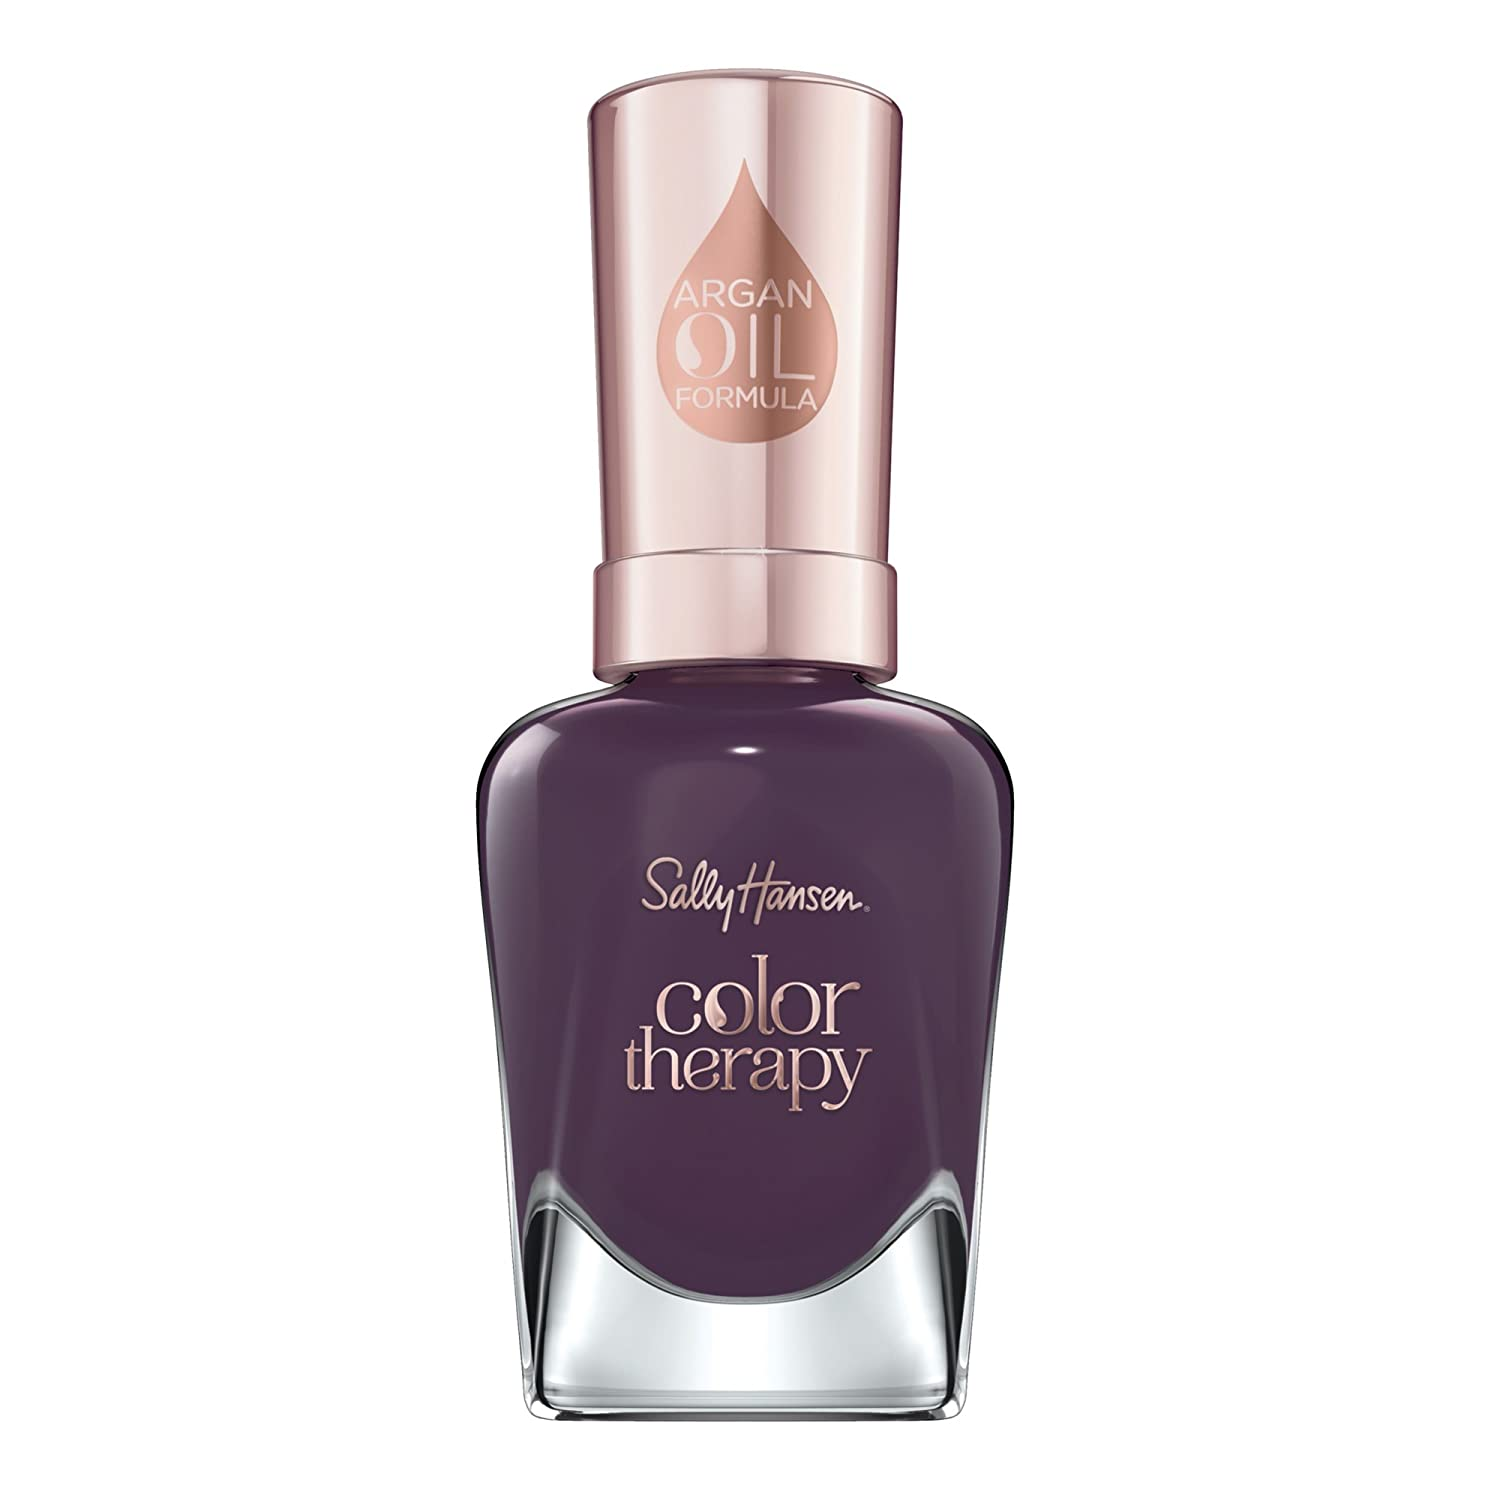 Sally Hansen - Color Therapy Nail Color, Purples Coty 30600064380